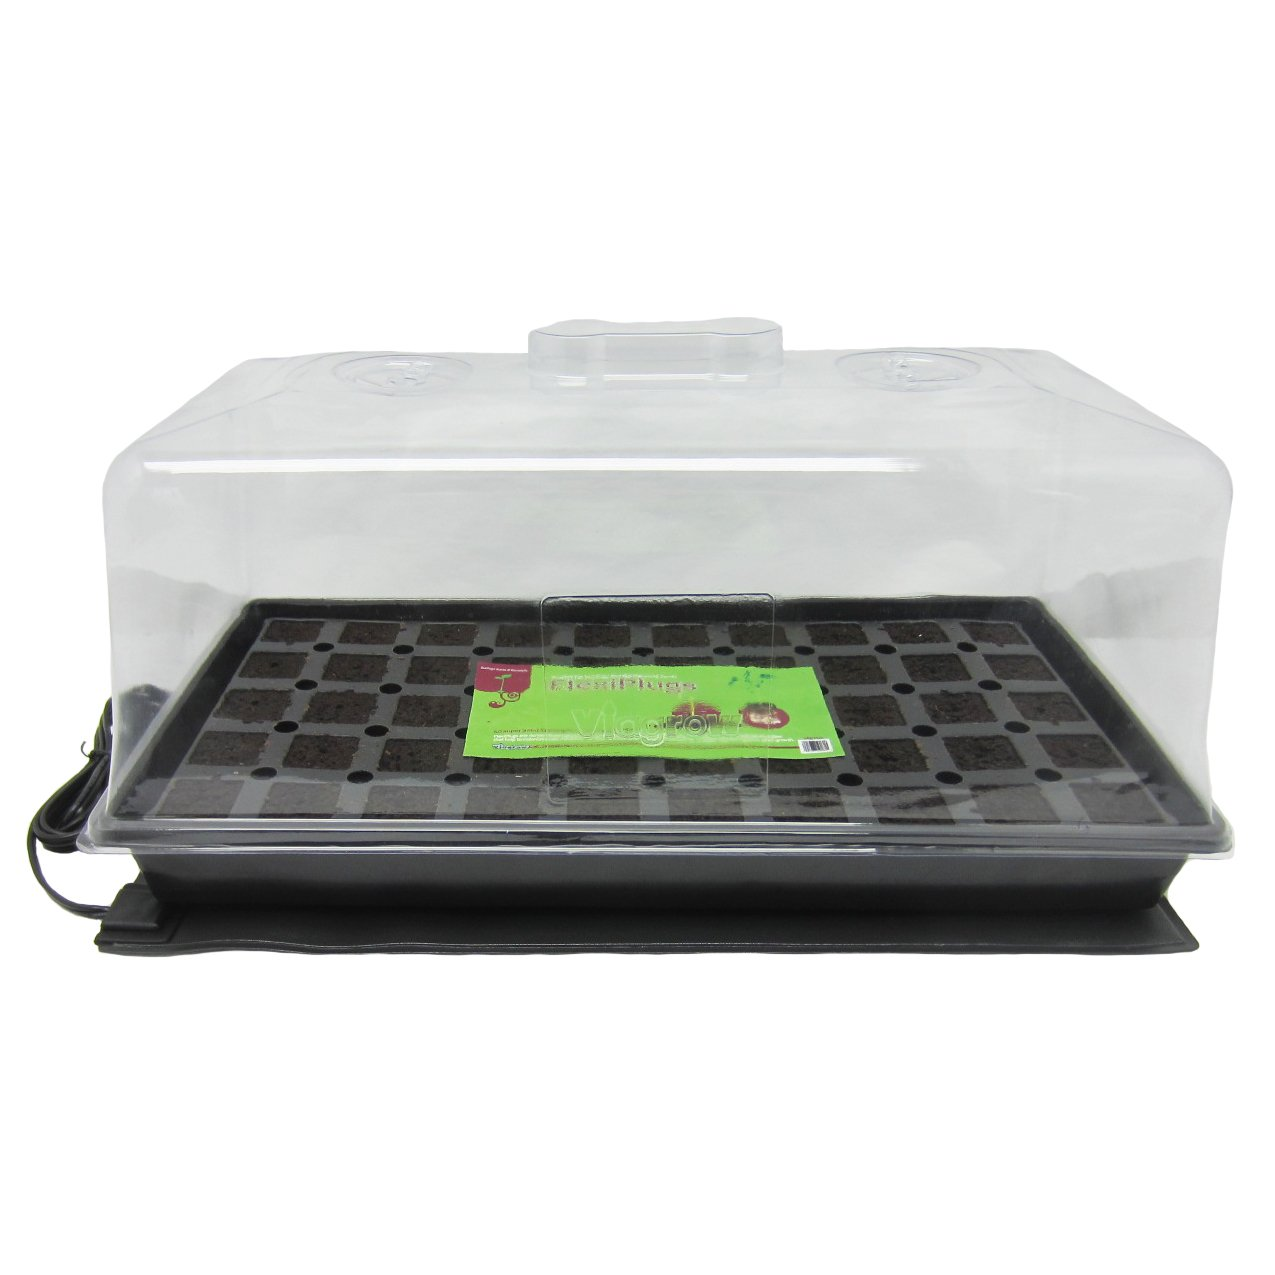 Viagrow 50 Site Pro Plugs with Tray, Insert, Tall Dome & Heat Mat